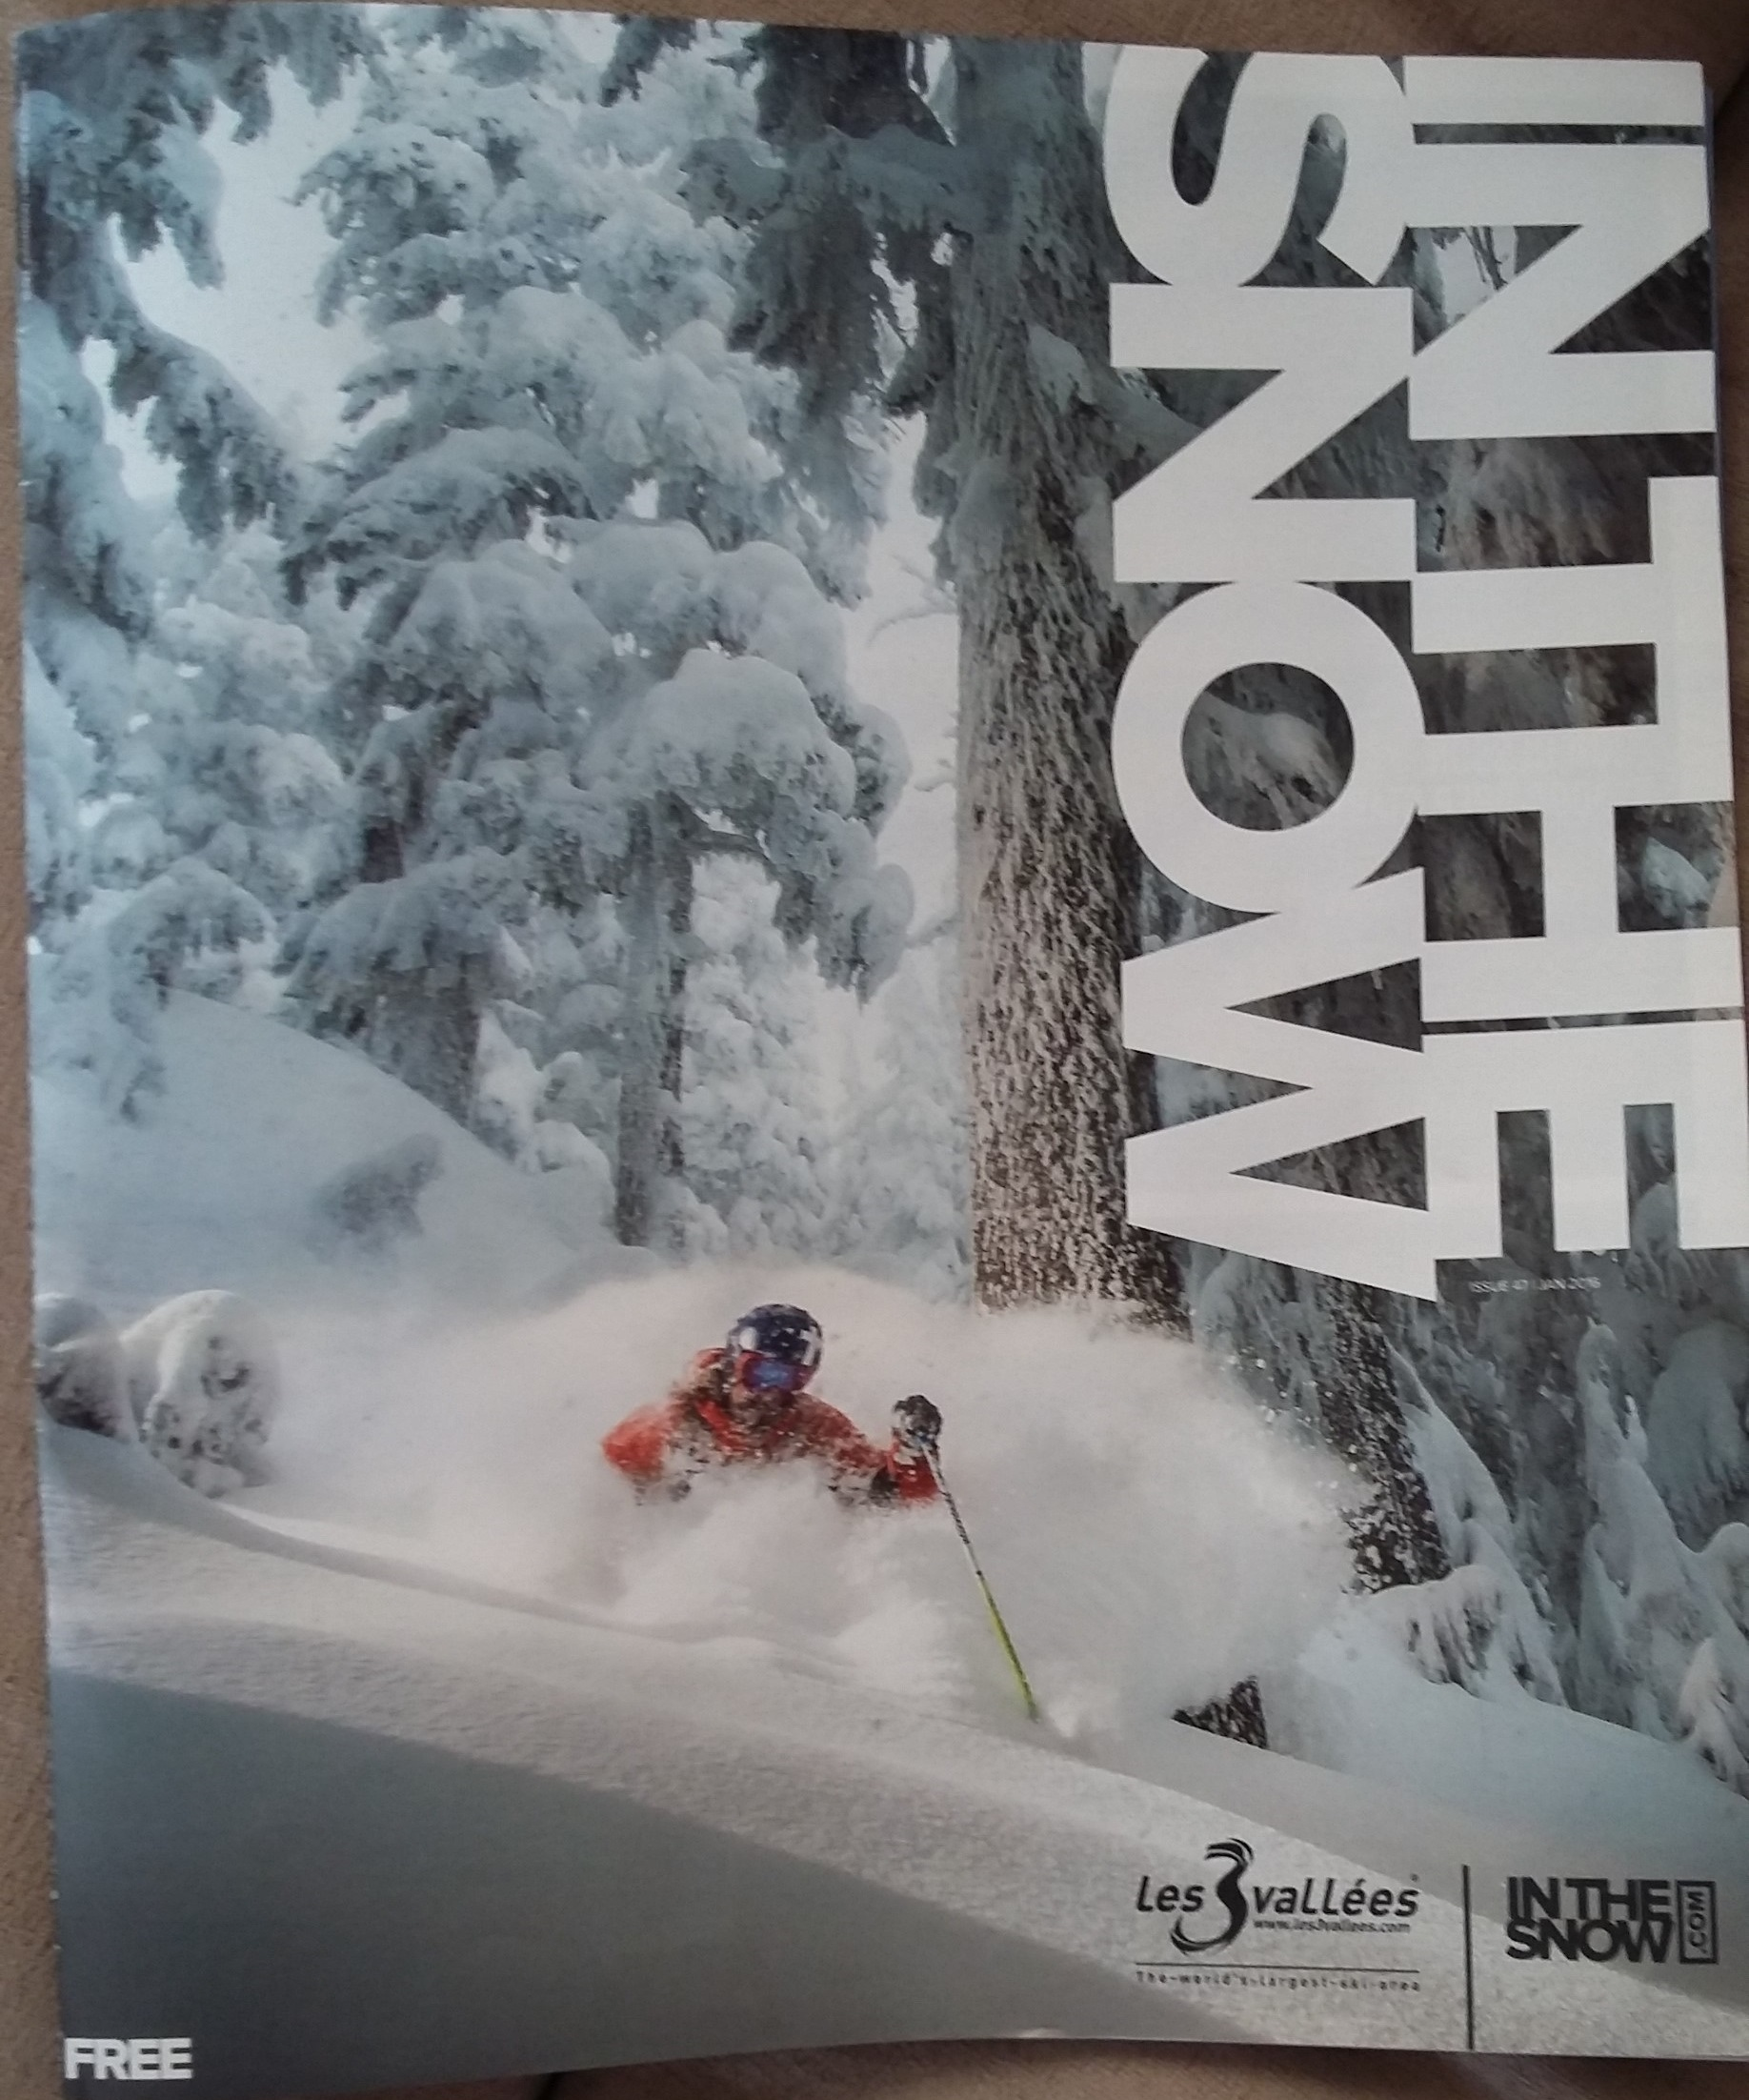 ITS st anton cover